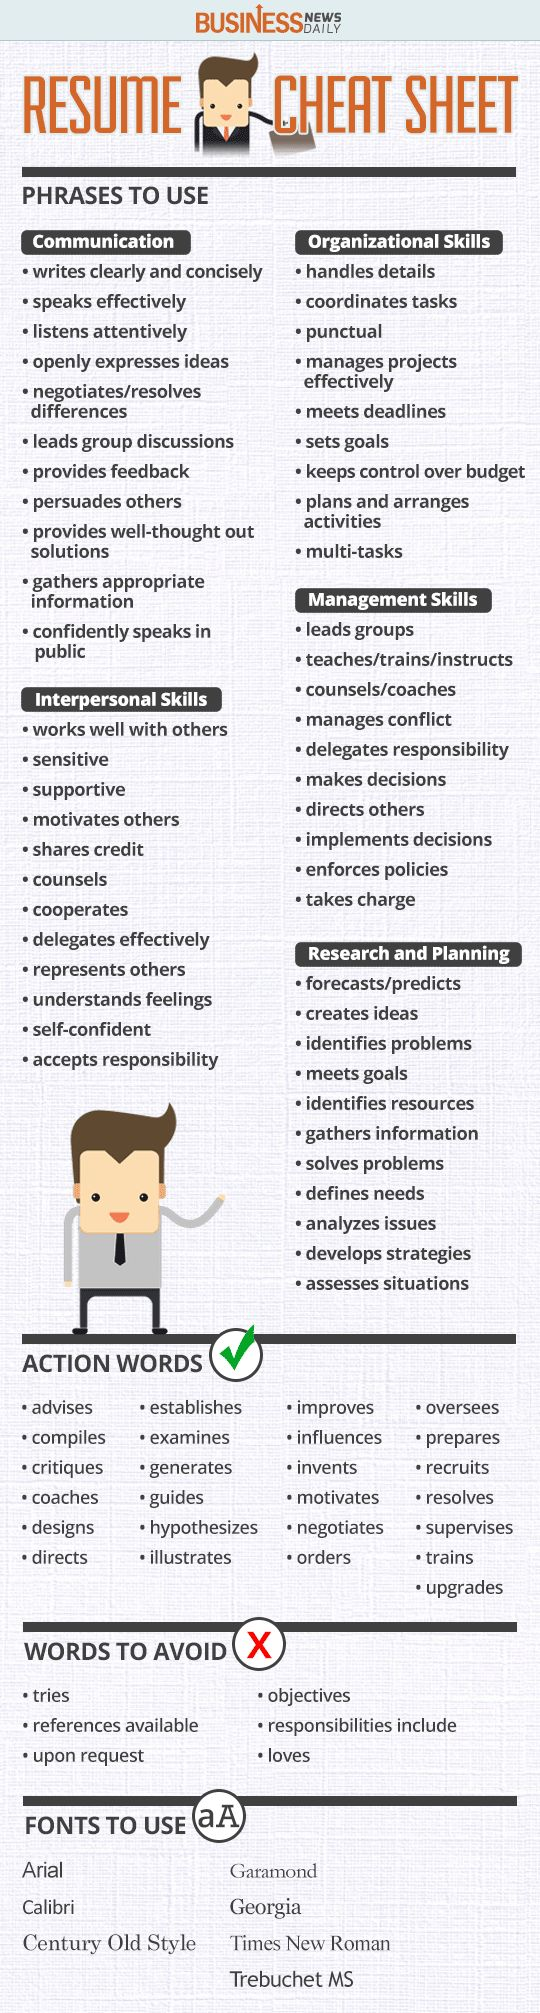 Opposenewapstandardsus  Remarkable  Ideas About Resume On Pinterest  Cv Format Resume Cv And  With Heavenly Resume Cheat Sheet Infographic Andrews Almost Done With A Complete Unit On Employment Which With Charming First Year Teacher Resume Also Functional Resume Templates In Addition Ministry Resume And Do You Put References On A Resume As Well As Profile Resume Additionally Sales Executive Resume From Pinterestcom With Opposenewapstandardsus  Heavenly  Ideas About Resume On Pinterest  Cv Format Resume Cv And  With Charming Resume Cheat Sheet Infographic Andrews Almost Done With A Complete Unit On Employment Which And Remarkable First Year Teacher Resume Also Functional Resume Templates In Addition Ministry Resume From Pinterestcom